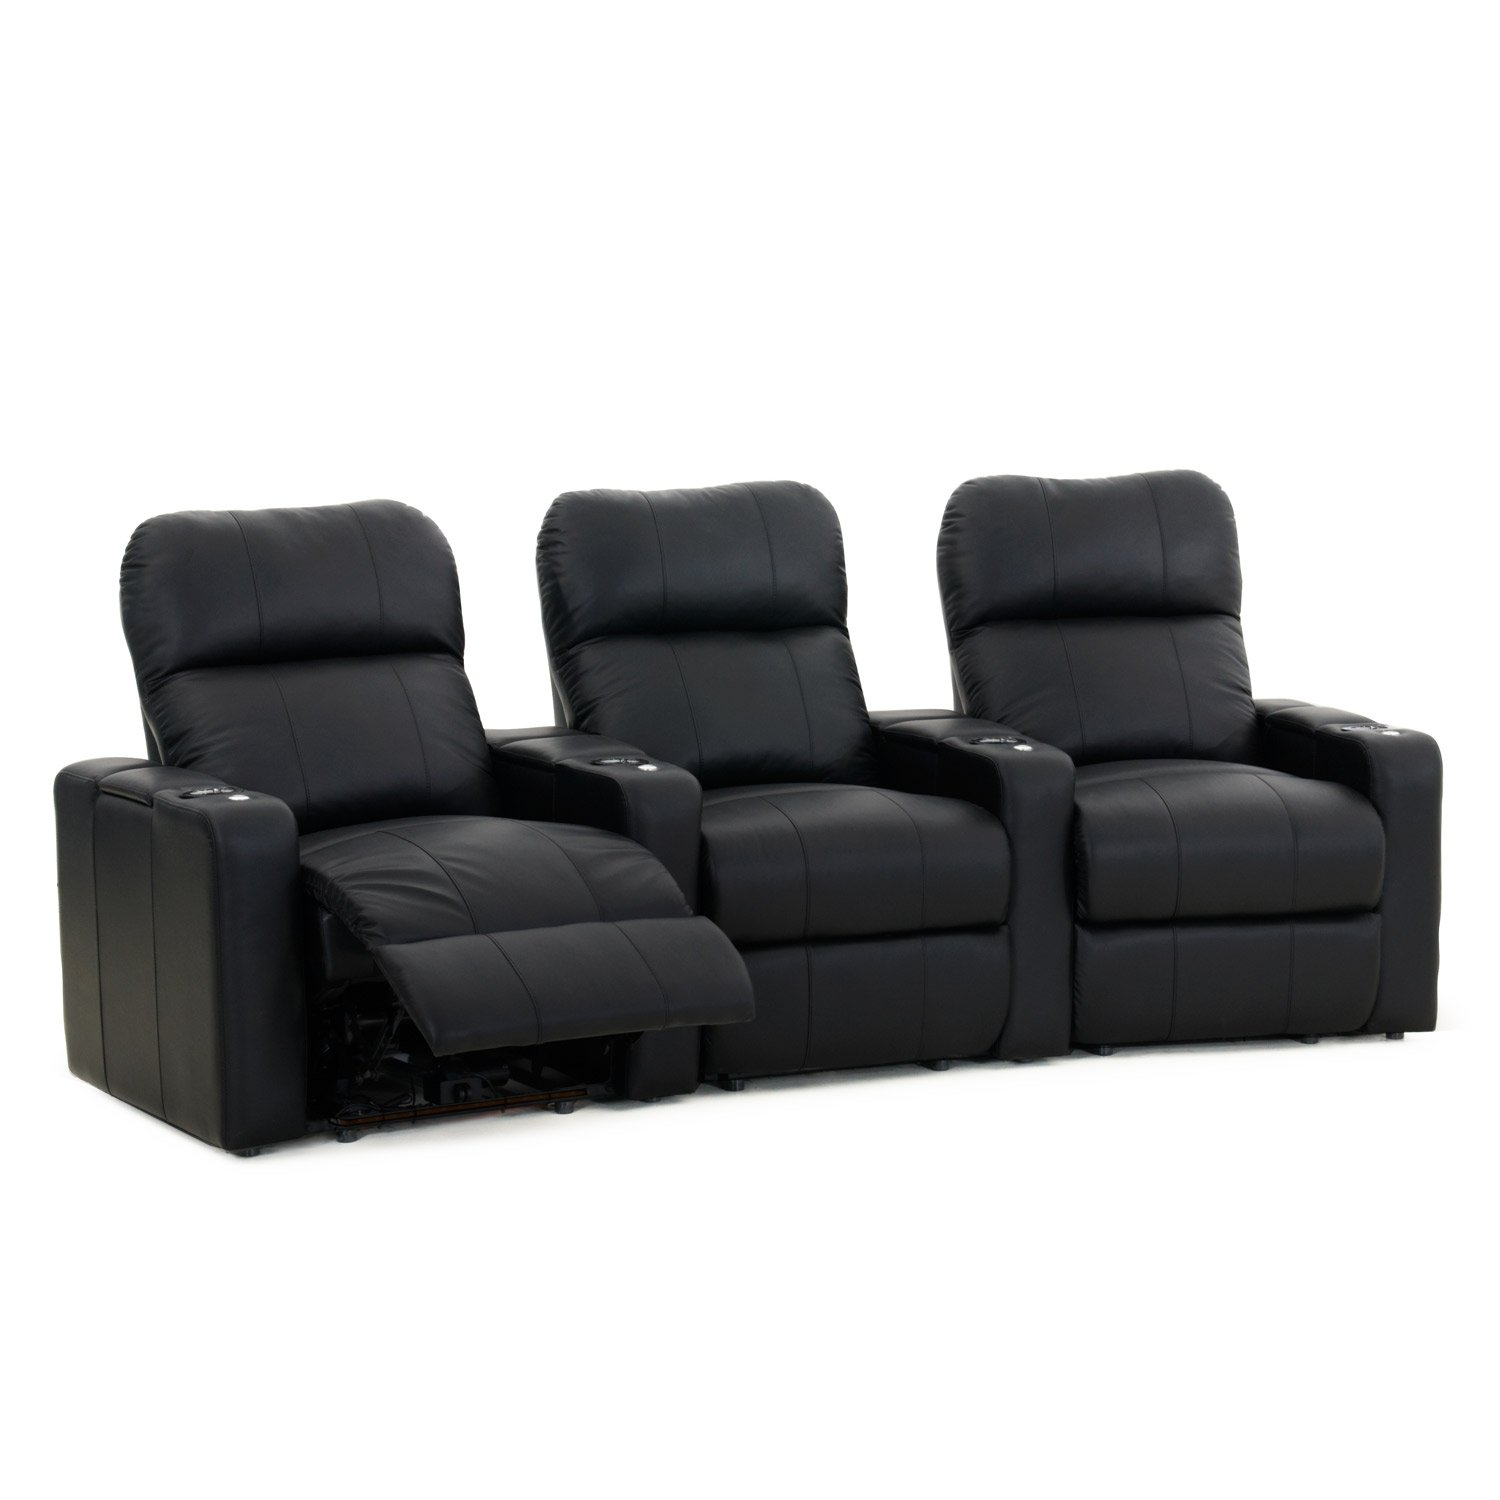 Octane Turbo XL700 Black Bonded Leather with Manual Recline (Row of 3 Curved) by Octane Seating